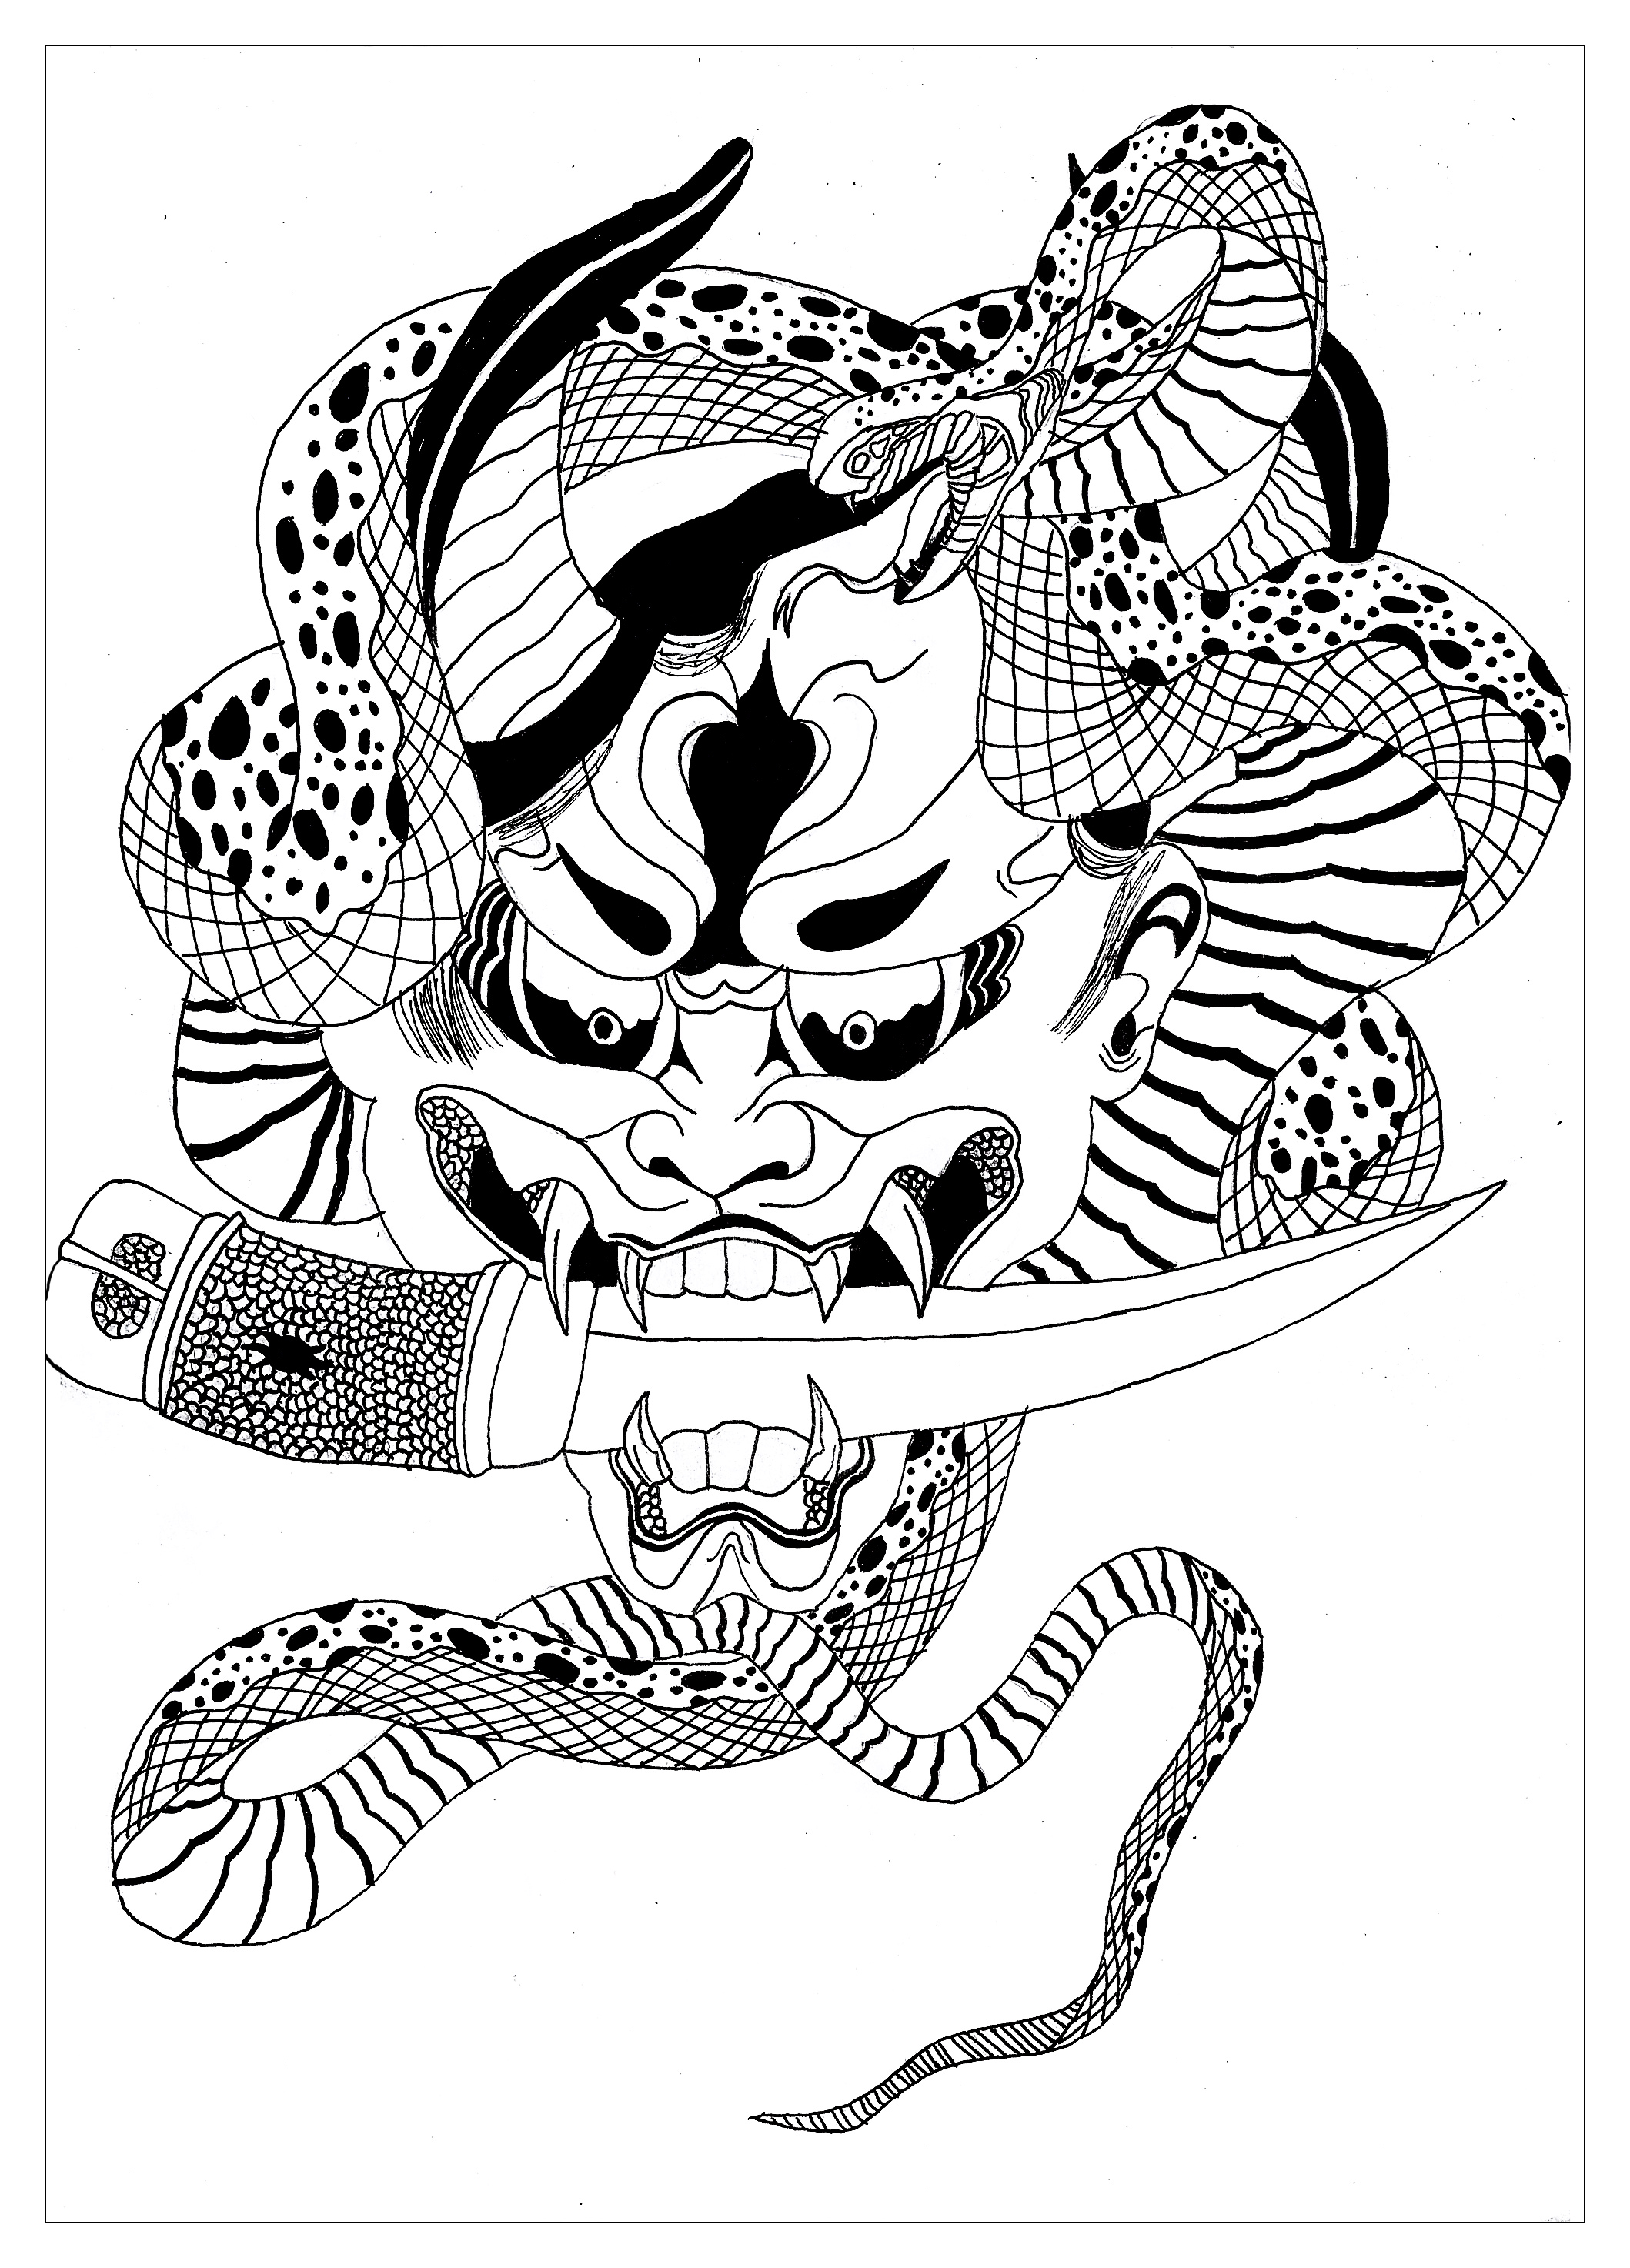 Japan - Coloring pages for adults | JustColor